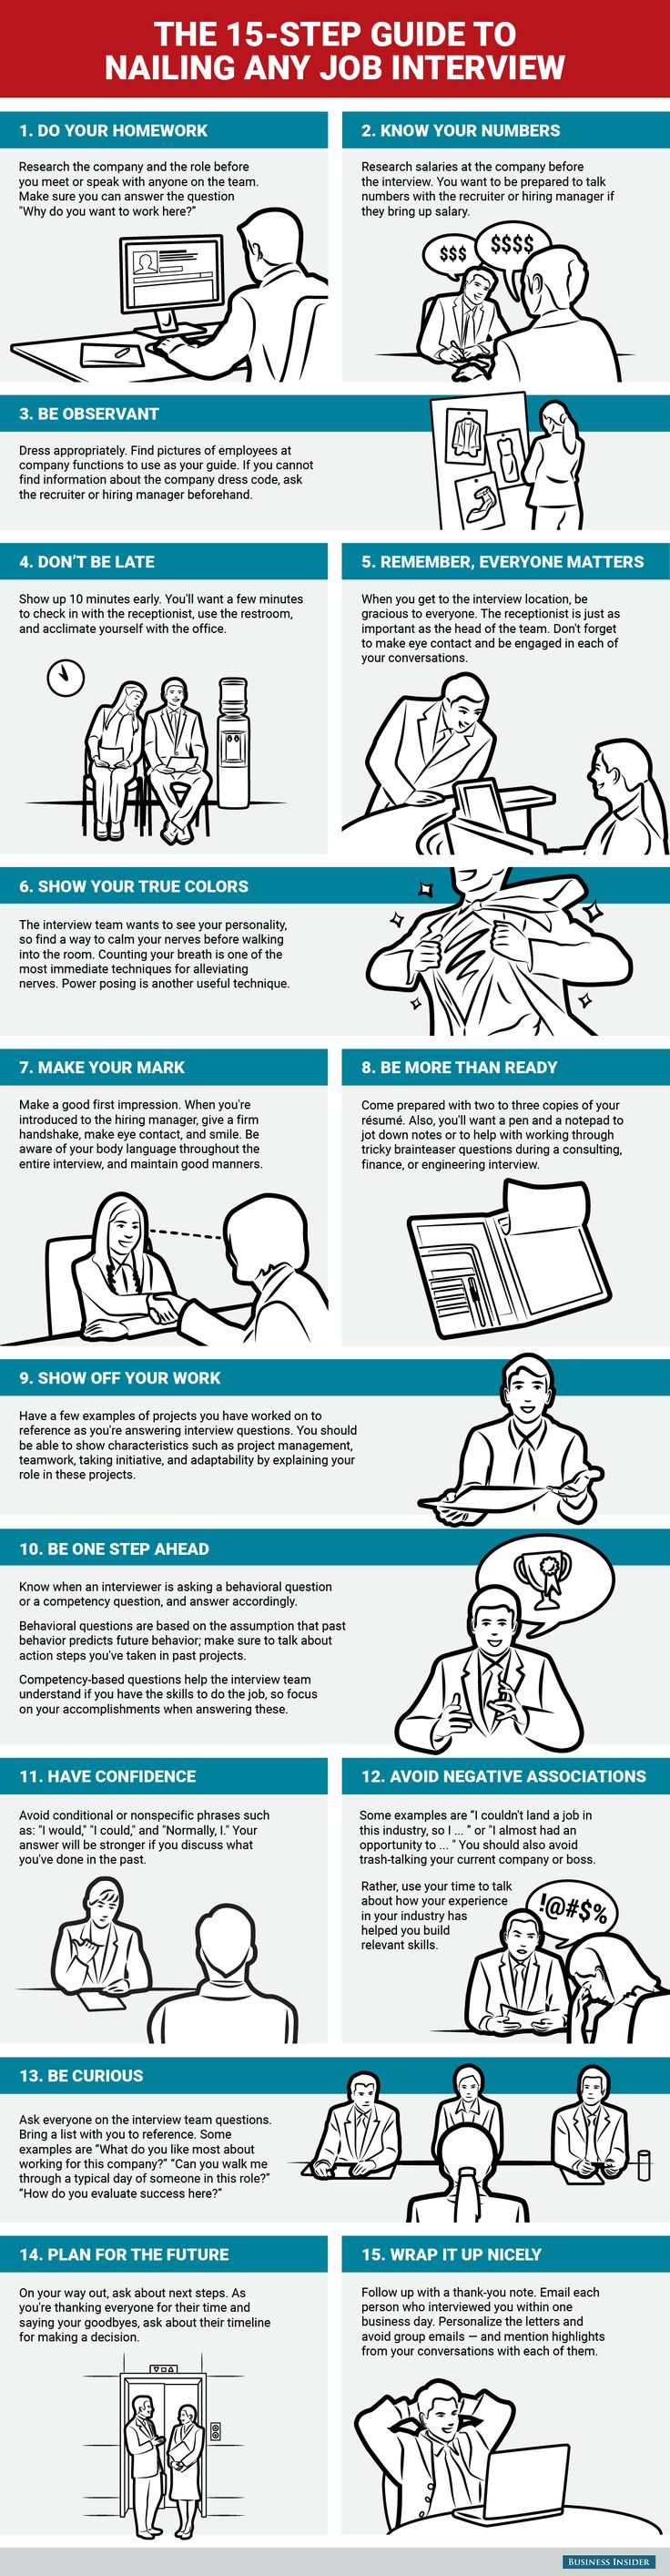 15-Step Guide to Nailing any Job Interview ...